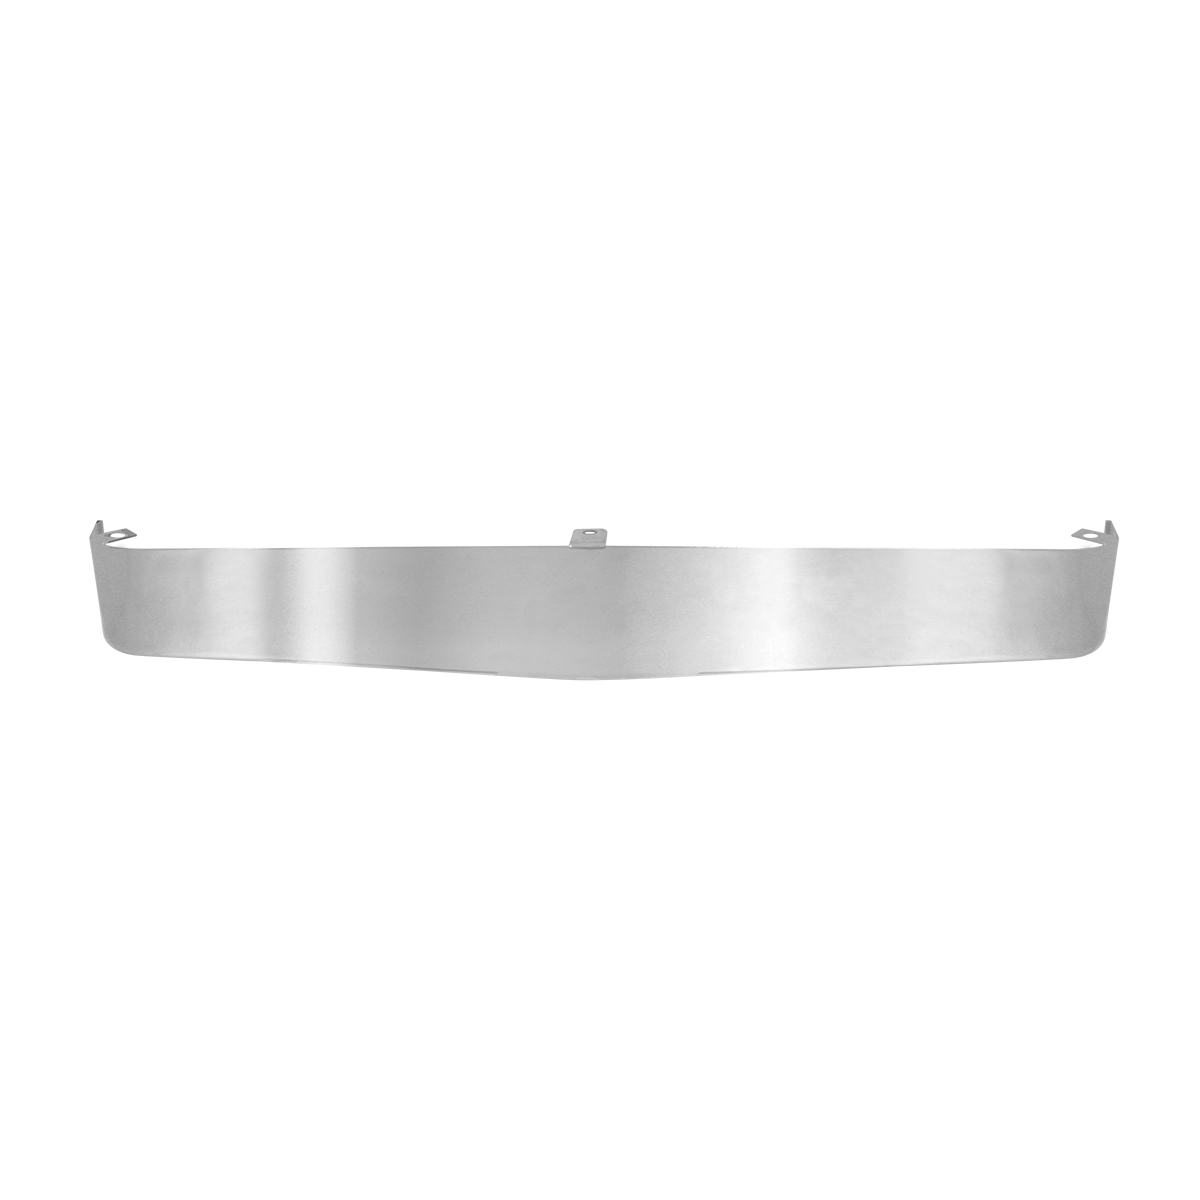 Headlight Visor for Pete 379